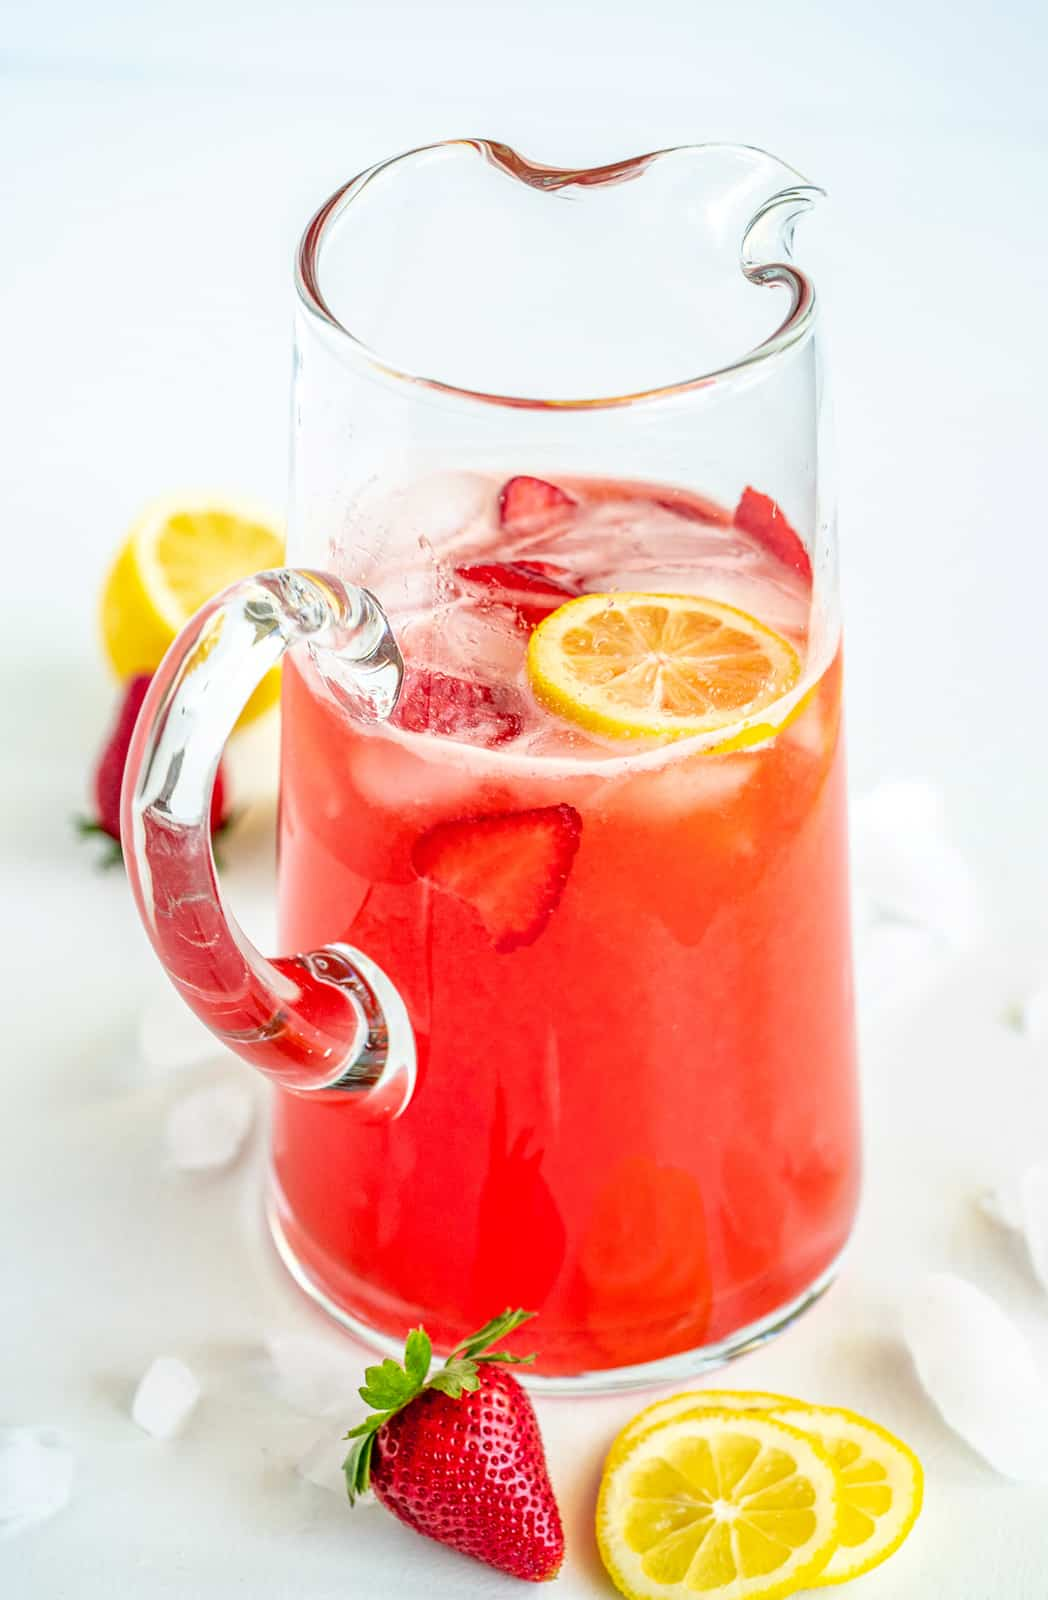 Pitcher of Strawberry Lemonade Recipe with lemons and strawberries